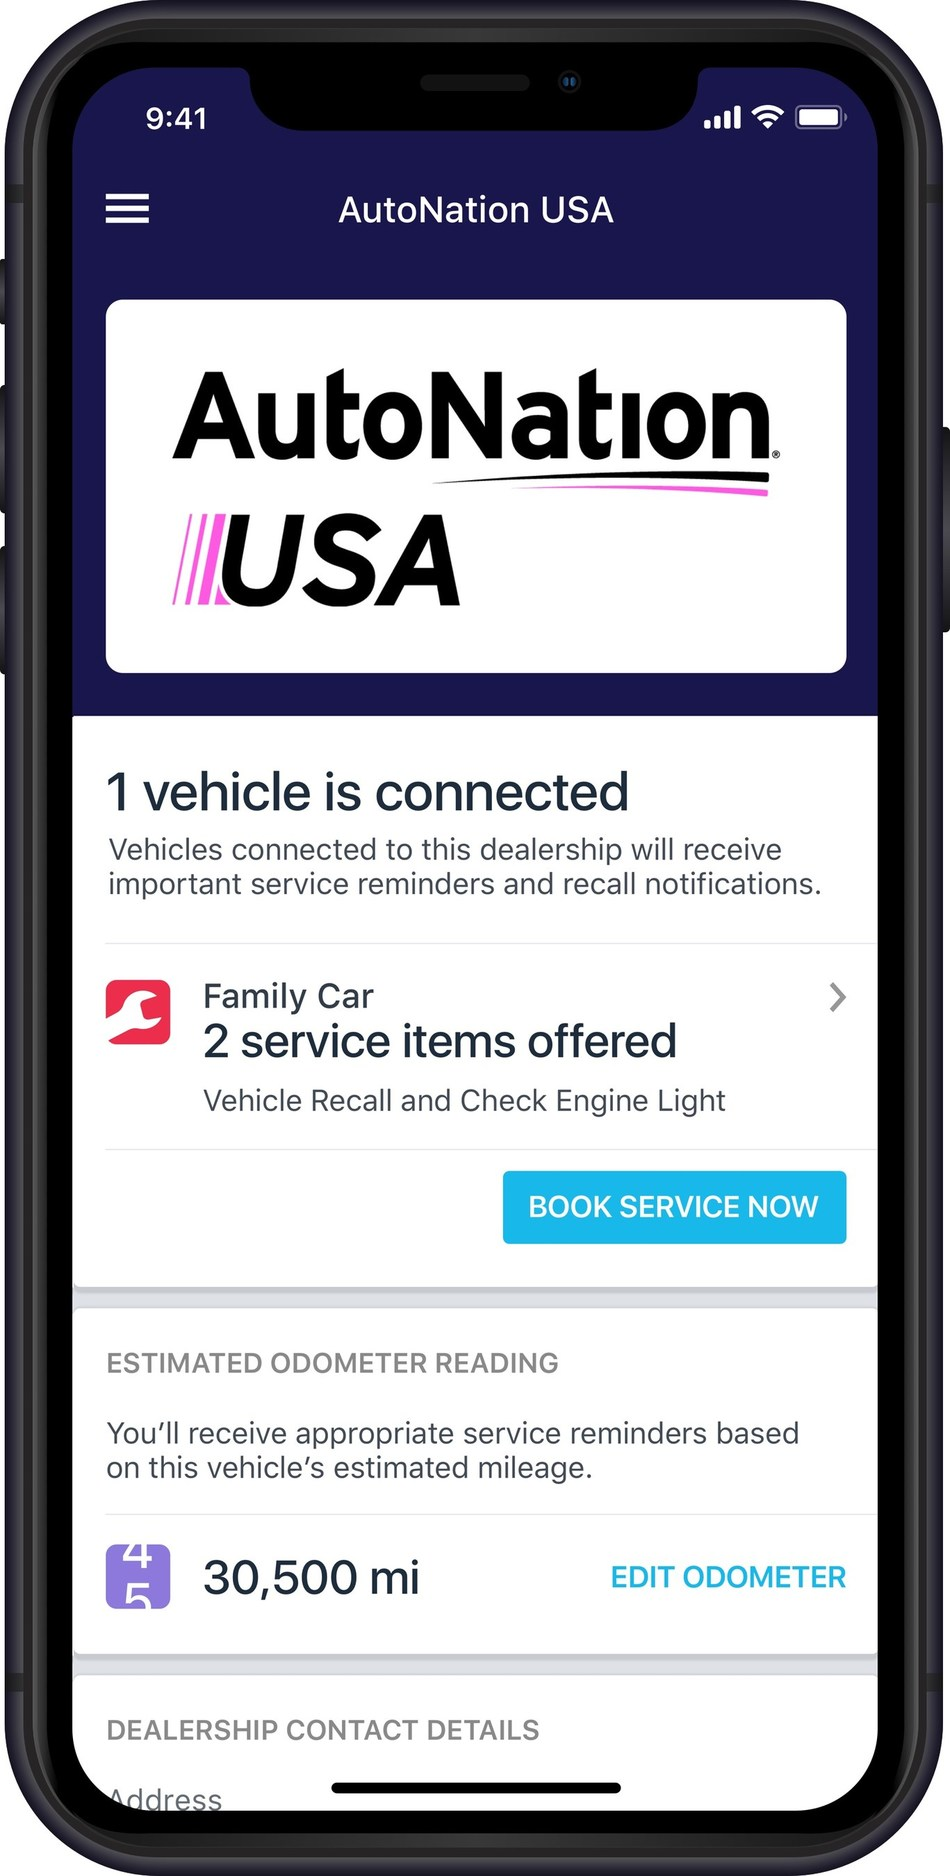 The Automatic app enables customers to receive service alerts and recall notifications and book service appointments with AutoNation directly through the app.